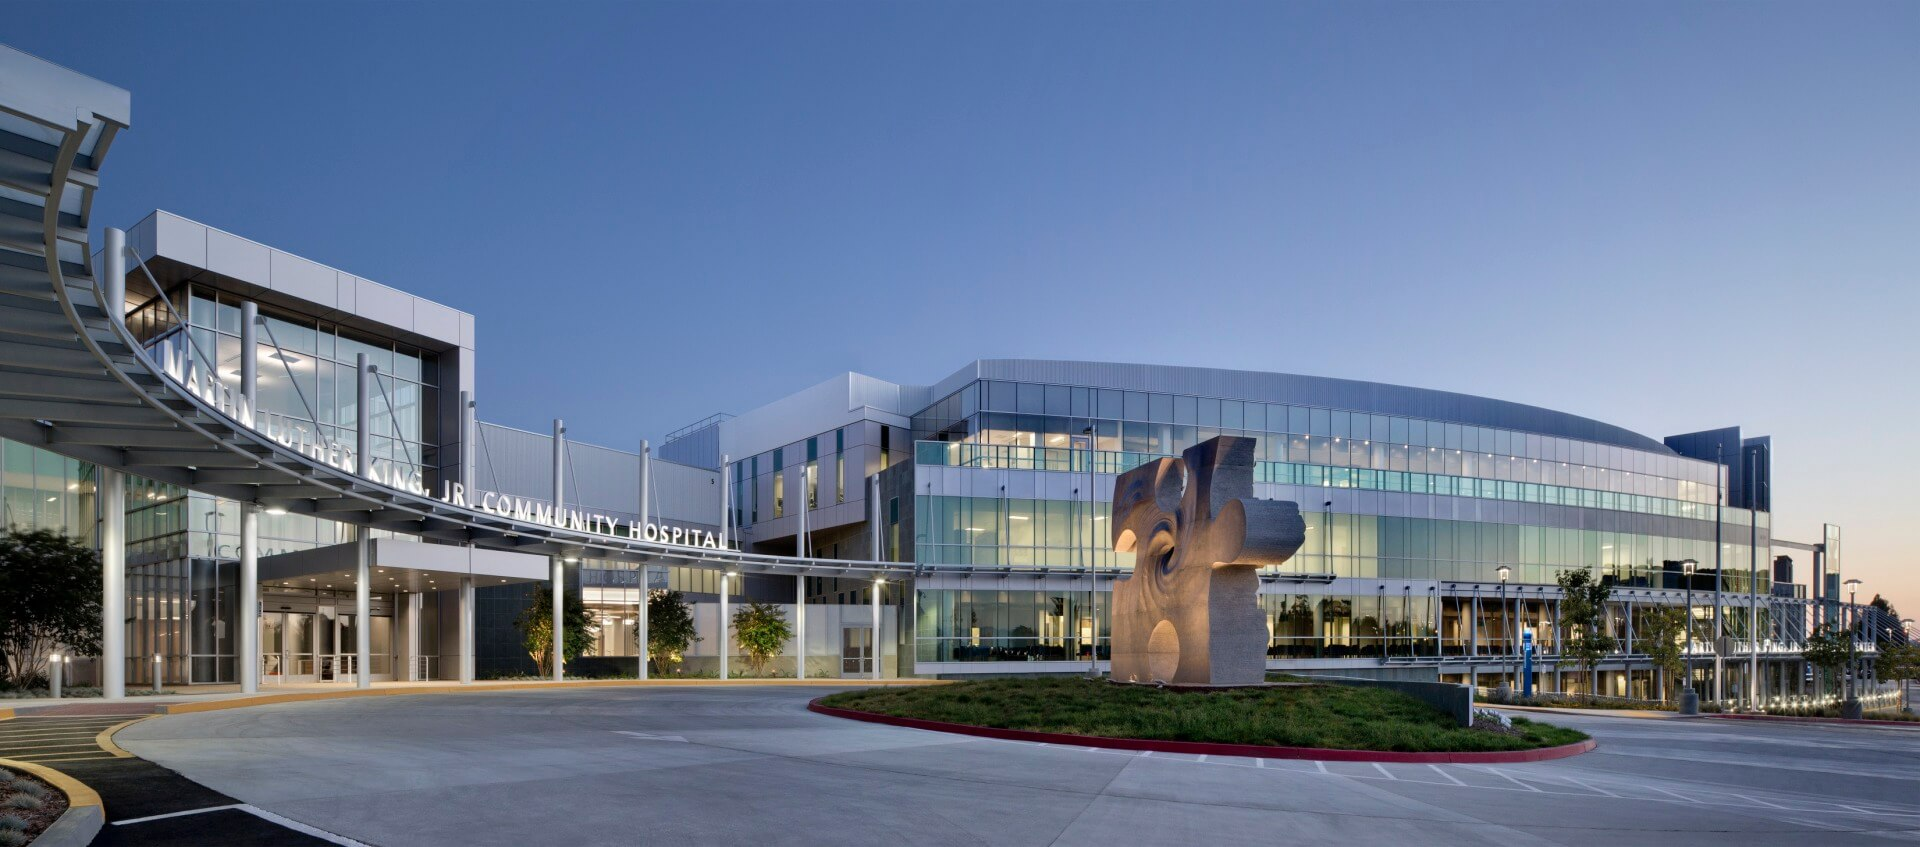 Martin Luther King Jr Community Hospital - Environmental Consulting